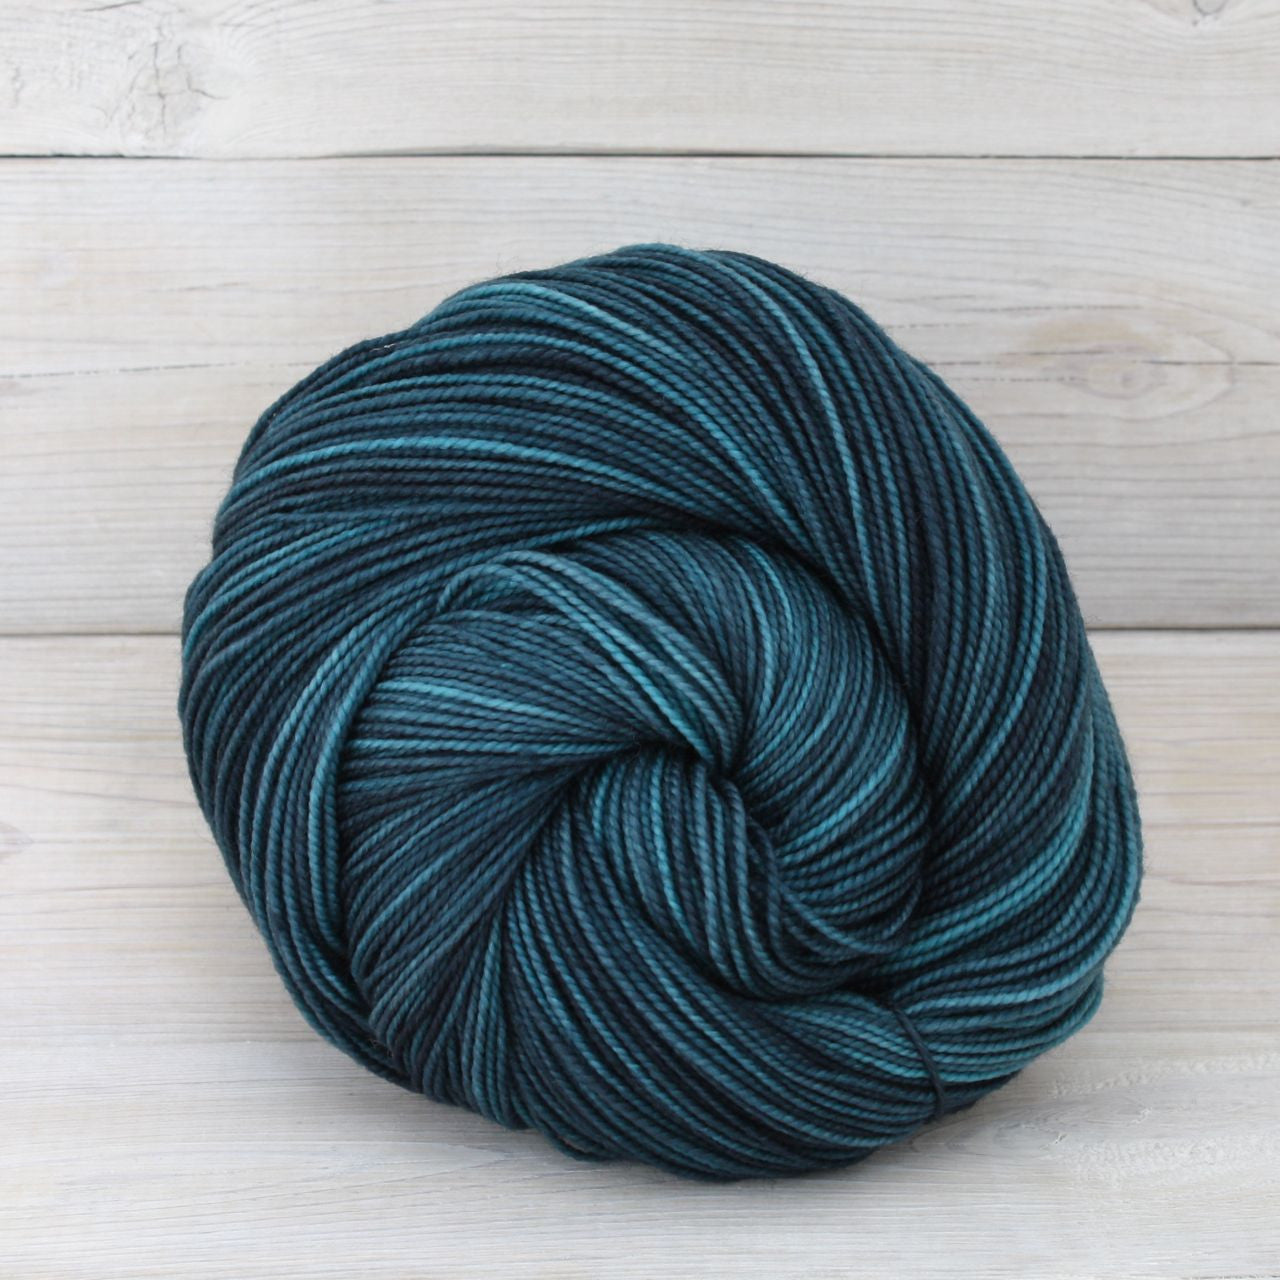 Luna Grey Fiber Arts Celeste Yarn | Colorway: Techno